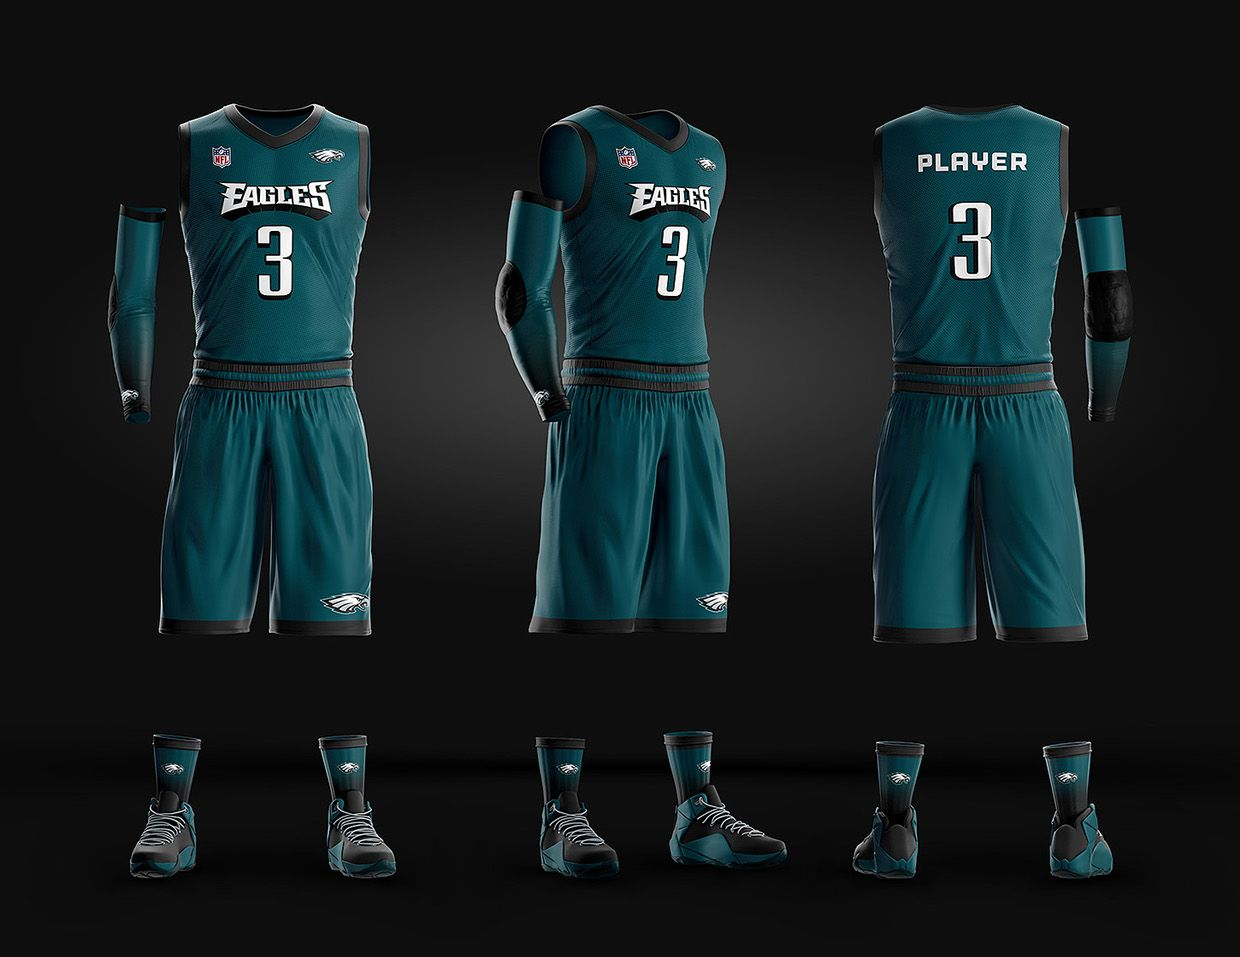 Download Basketball Uniform Jersey Psd Template On Wacom Gallery Basketball Uniforms Design Jersey Design Basketball Uniforms